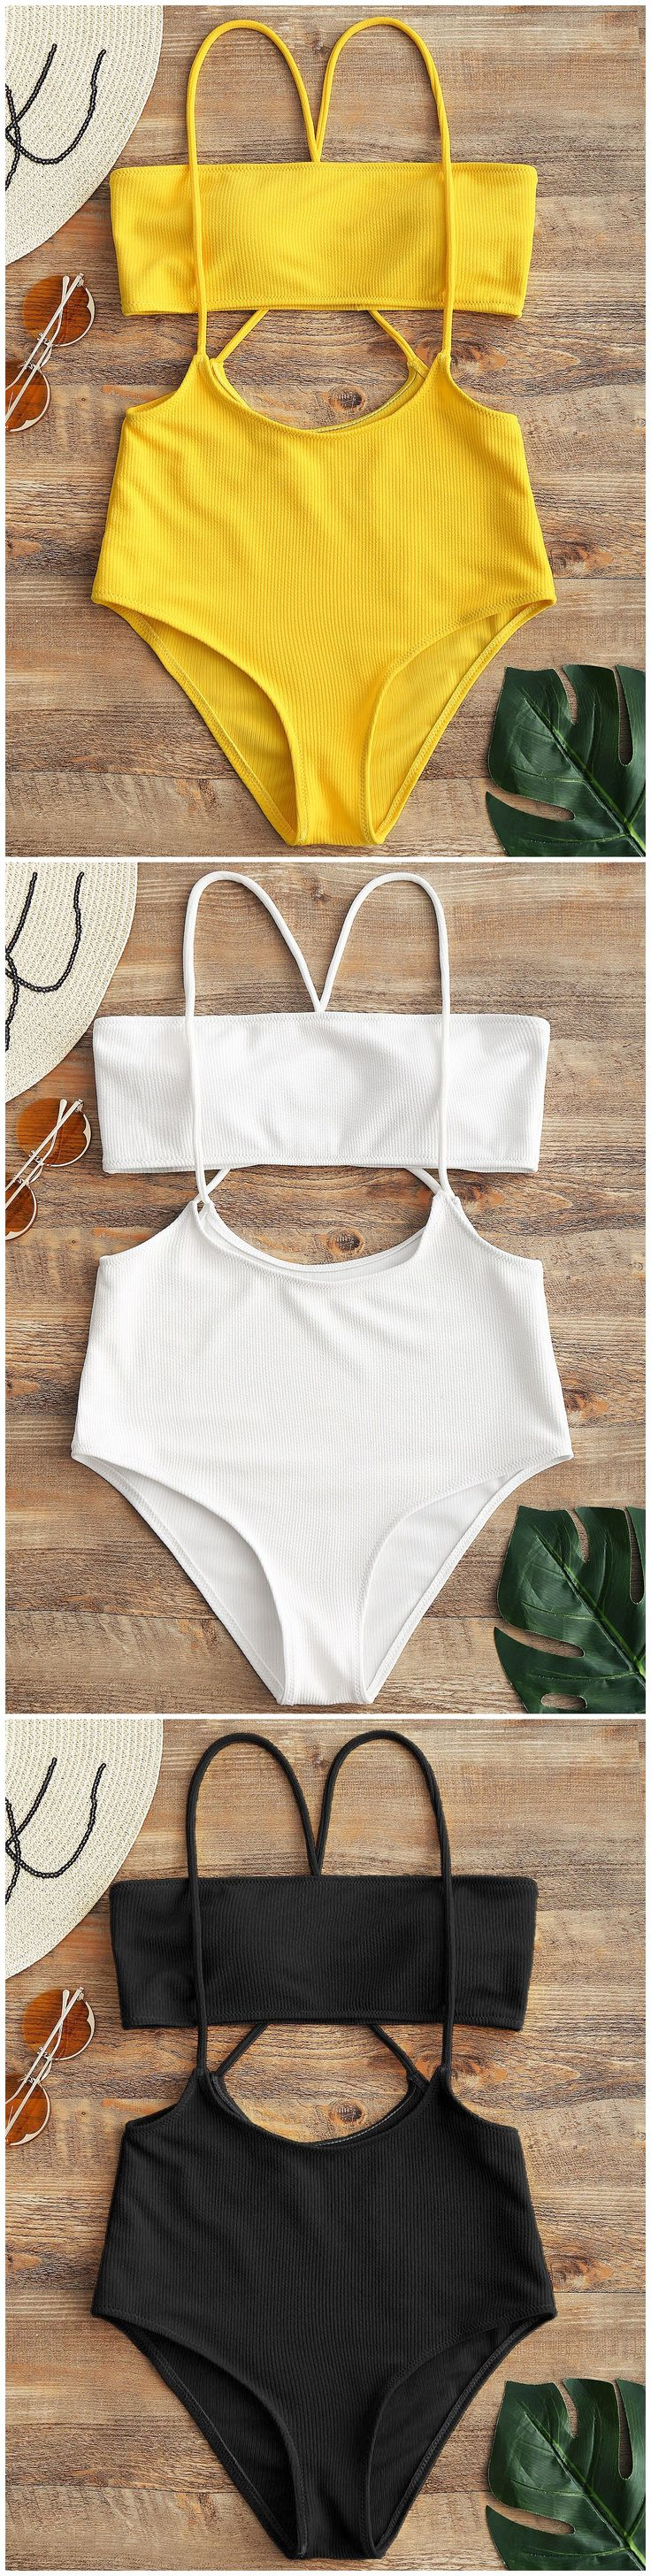 Up to 80% OFF! Bandeau Top And High Waisted Slip Bikini Bottoms. #Zaful #Swimwear #Bikinis zaful,zaful outfits,zaful dresses,spring outfits,summer dresses,Valentine's Day,valentines day ideas,cute,casual,fashion,style,bathing suit,swimsuits,one pieces,swimwear,bikini set,bikini,one piece swimwear,beach outfit,swimwear cover ups,high waisted swimsuit,tankini,high cut one piece swimsuit,high waisted swimsuit,swimwear modest,swimsuit modest,cover ups,swimsuit cover up @zaful Extra 10% OFF Code:ZF20